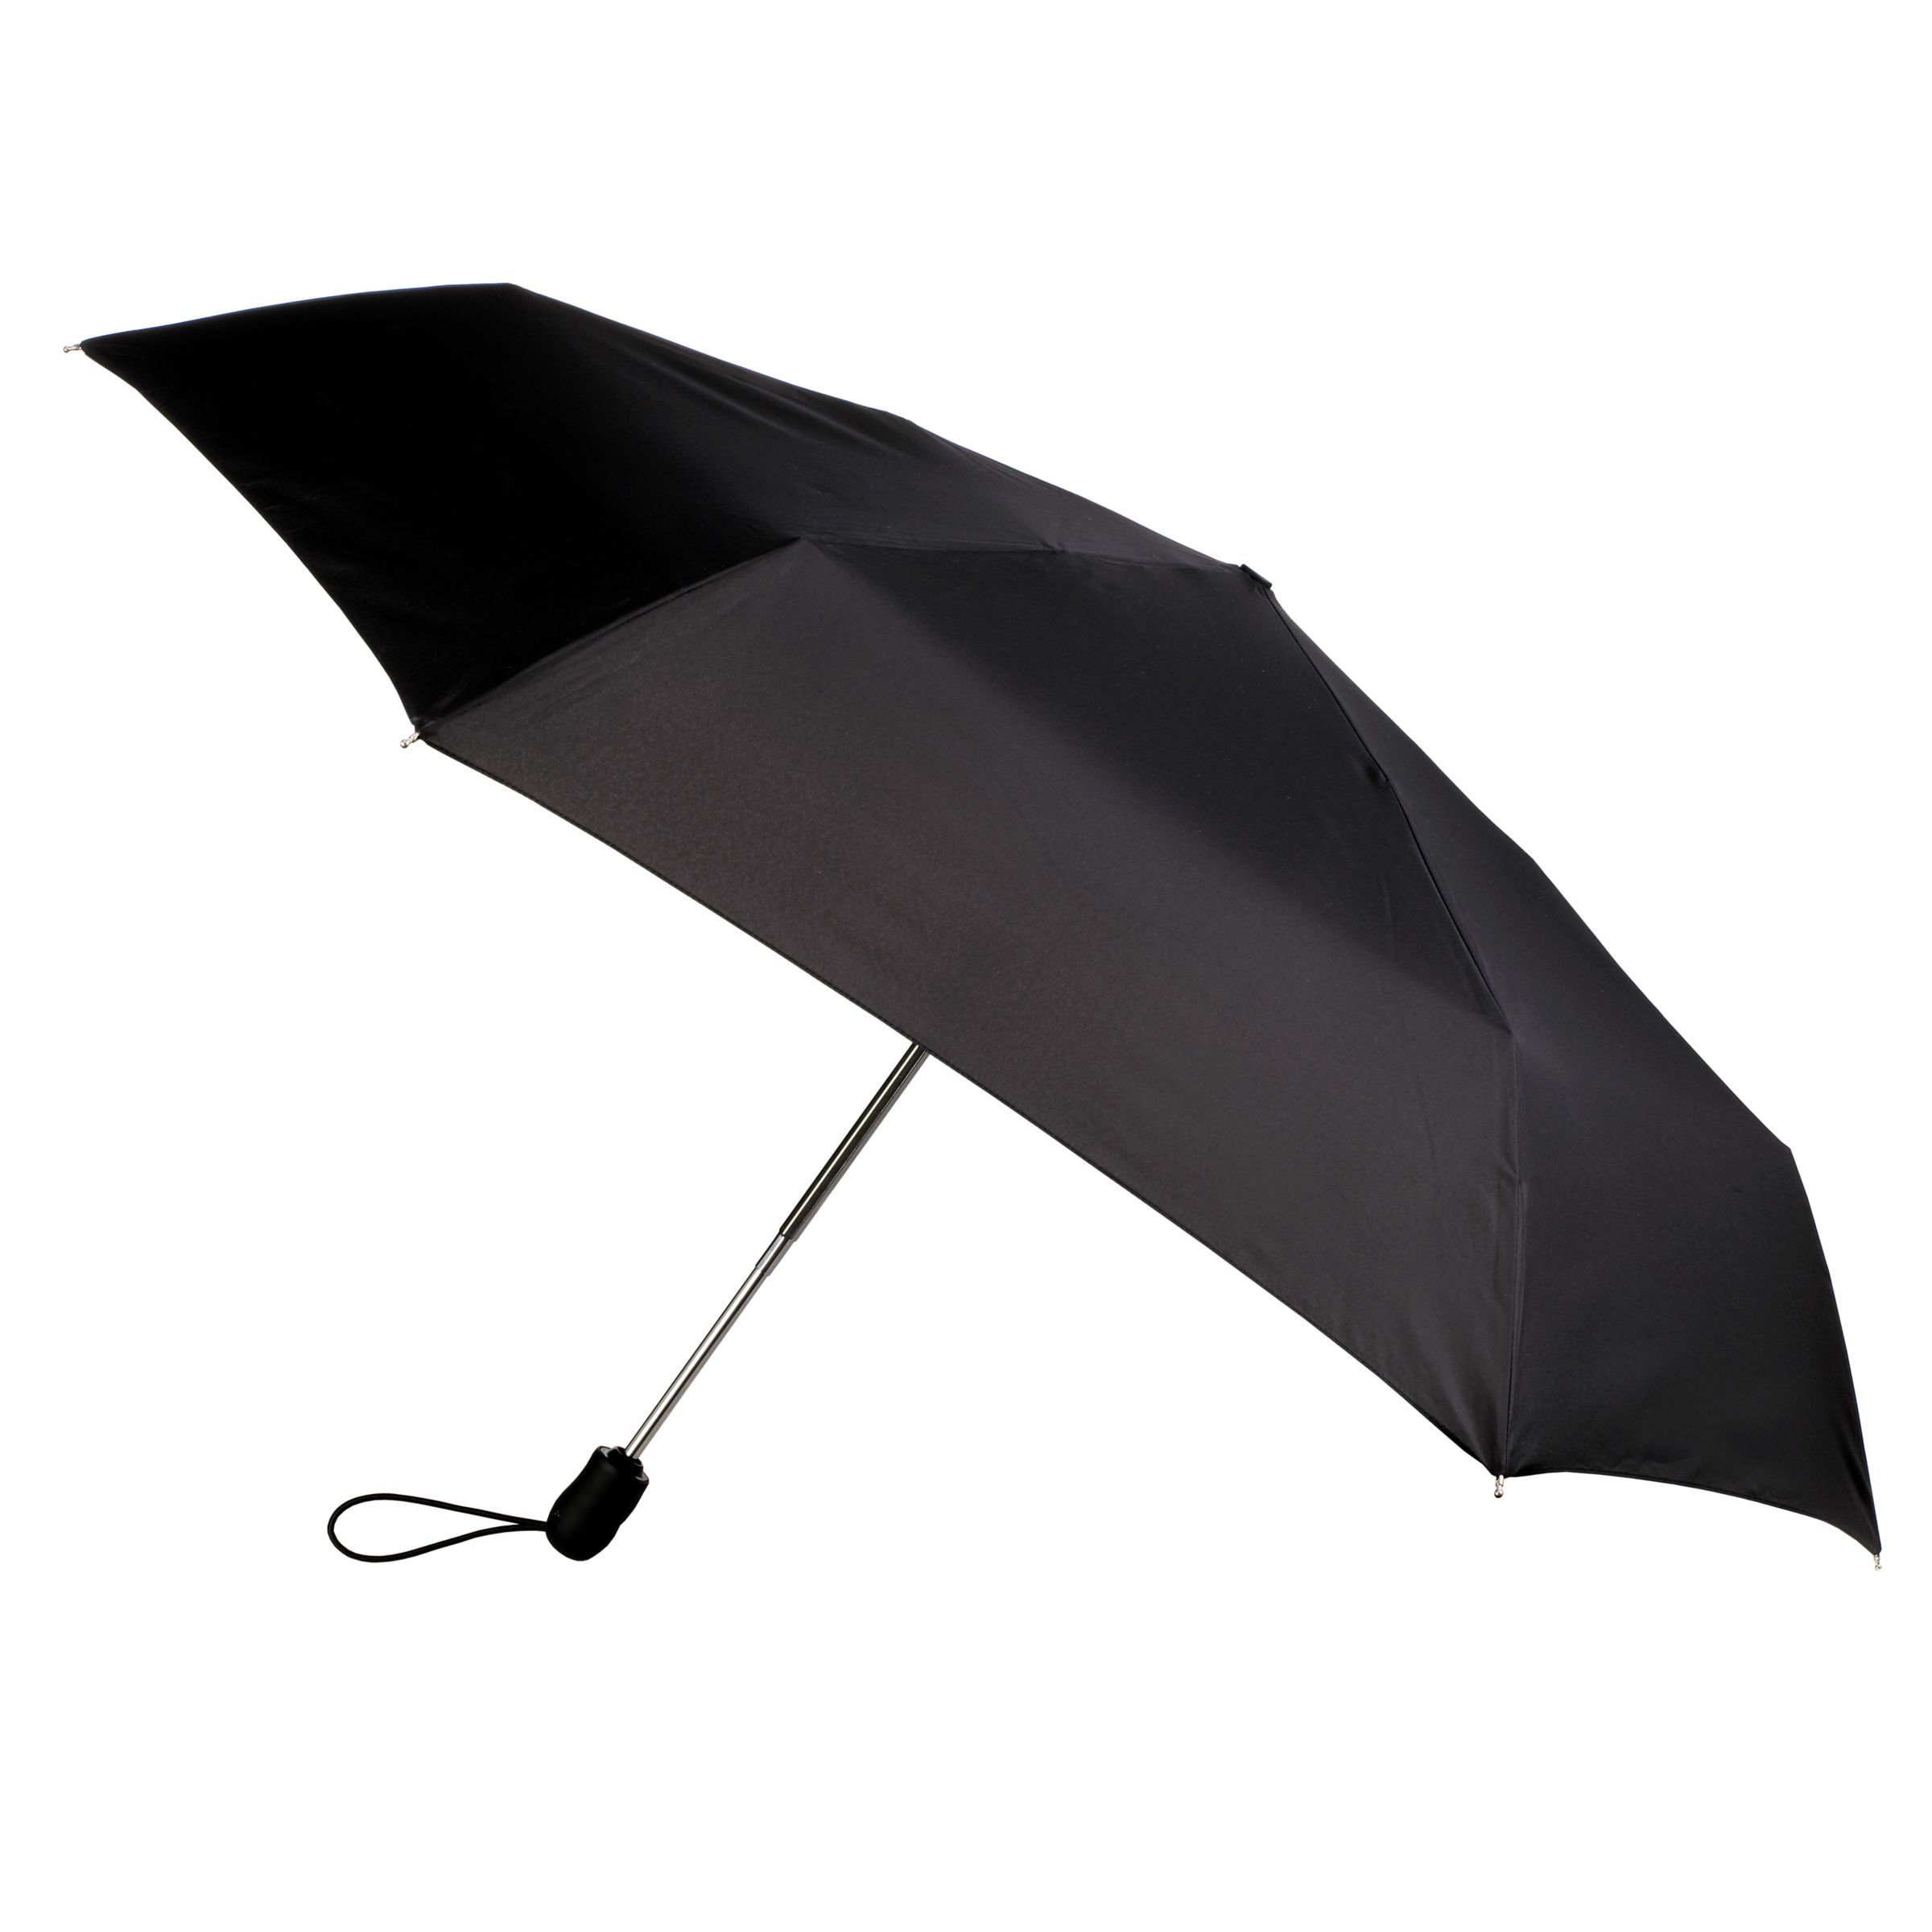 Fulton Fulton Open & Close Superslim-1 Umbrella, Black